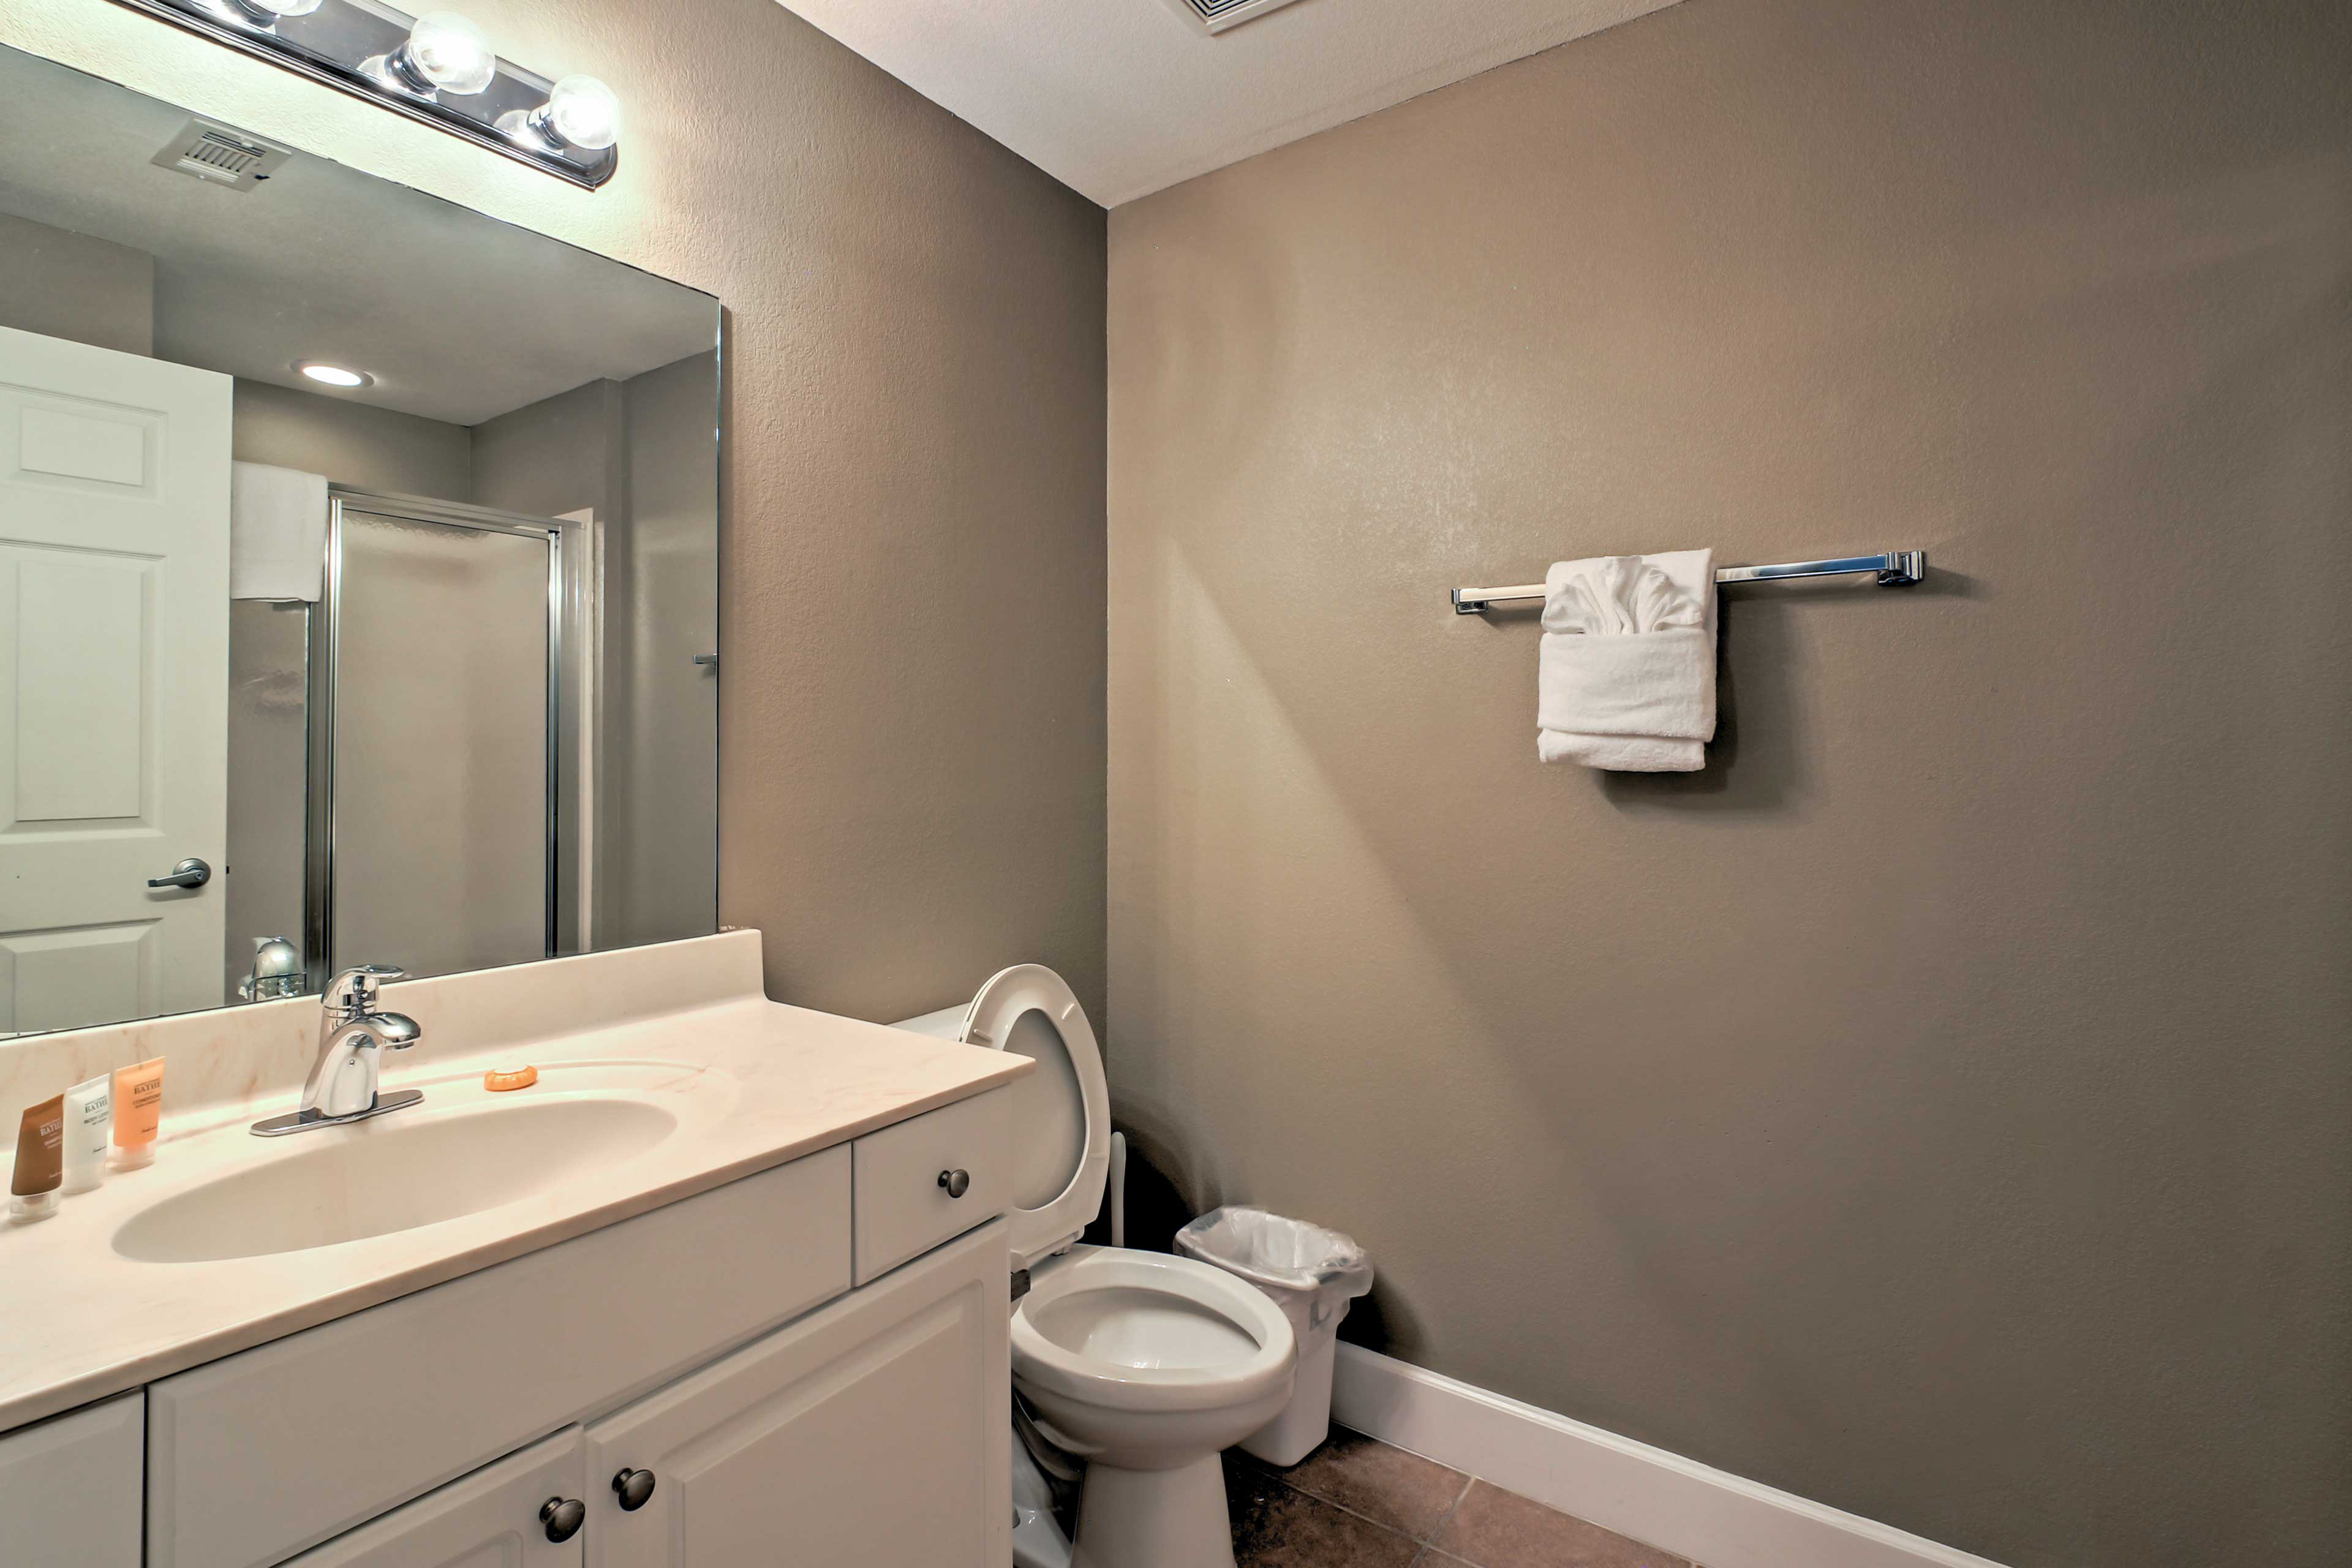 Both bathrooms have all of the towels and linens you'll need during your stay.